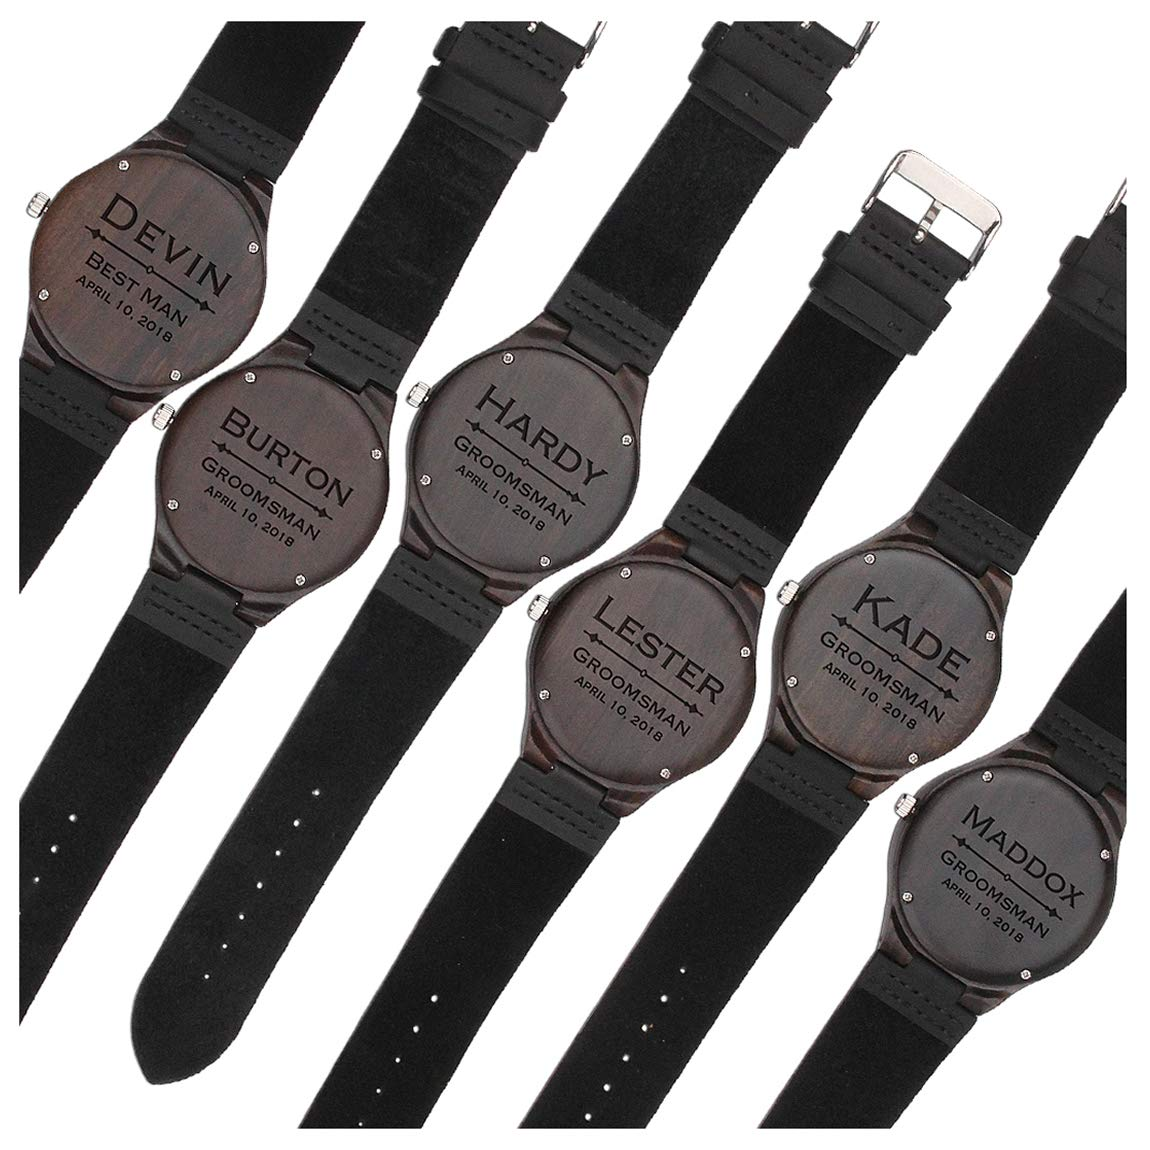 Groomsmen Gifts for Wedding Custom Engraved Wooden Watches for Men Personalized Groomsmen Gifts Ideas  sc 1 st  Amazon.com & Menu0027s Groomsmen Gifts: Amazon.com